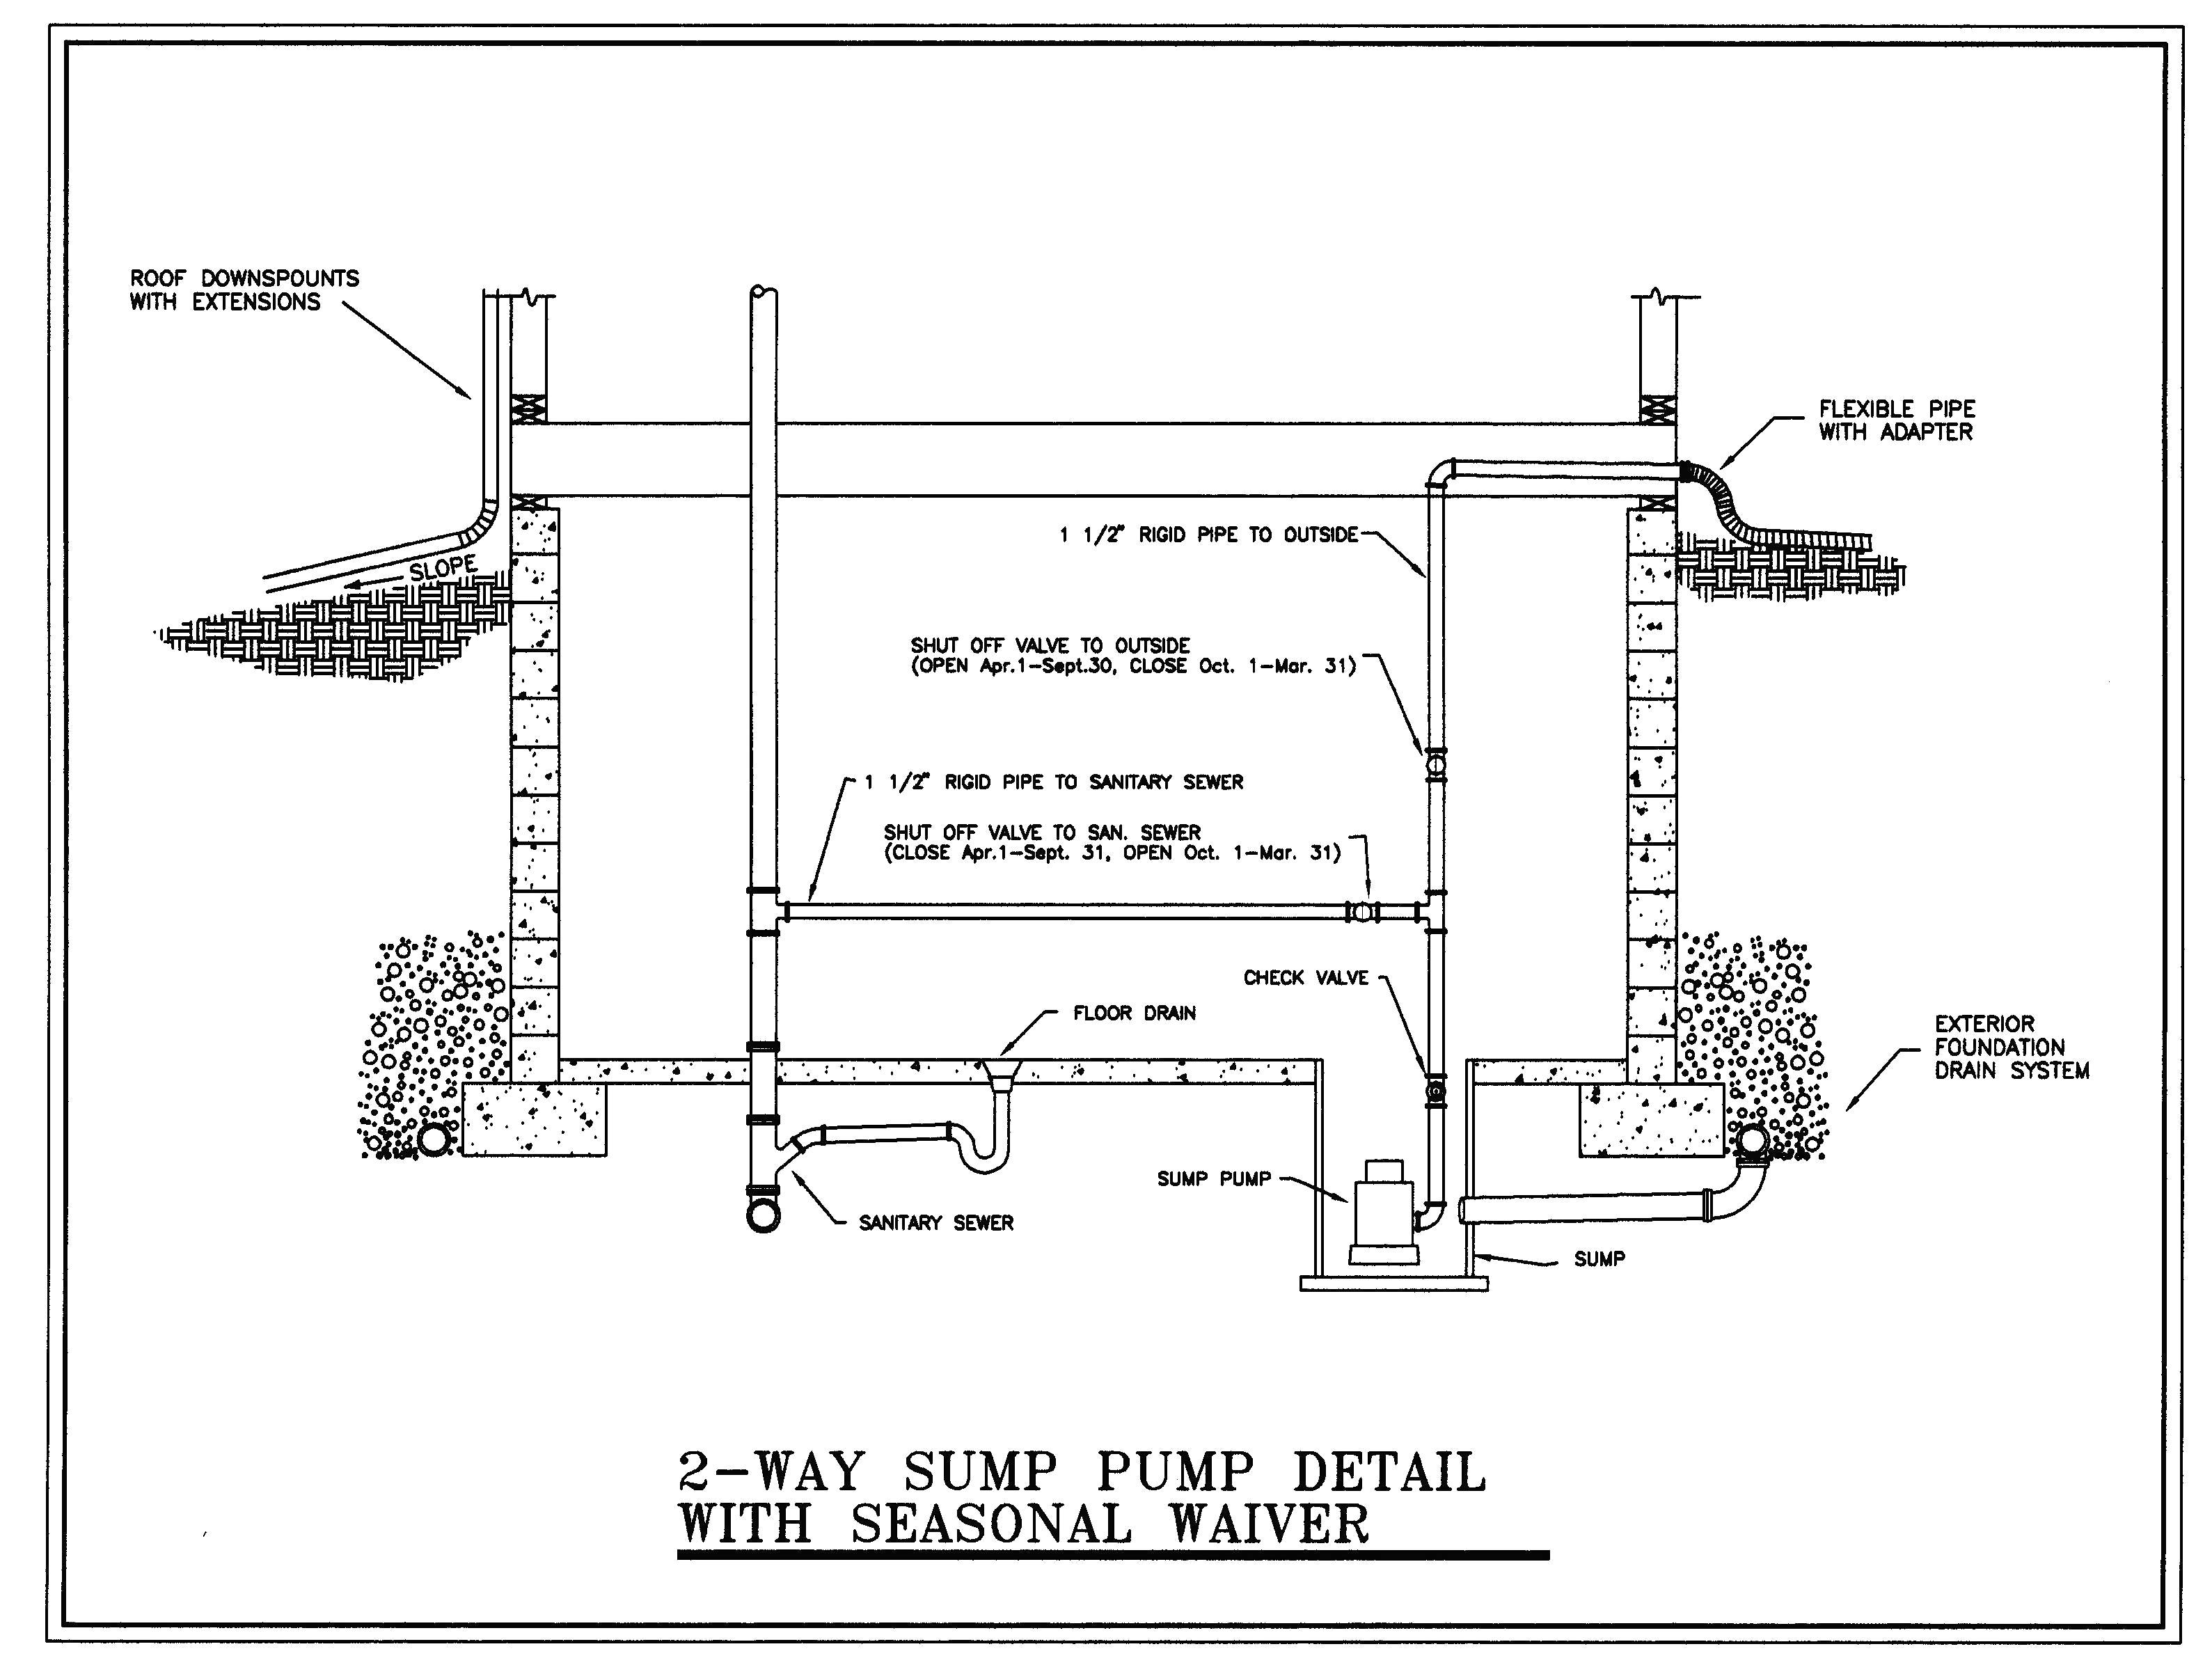 red lion sprinkler pump wiring diagram Download-Sprinkler Pump Wiring Diagram Inspirational Irrigation Valve Wiring Diagram Get Line Free Sta Rite Pump for 20-h